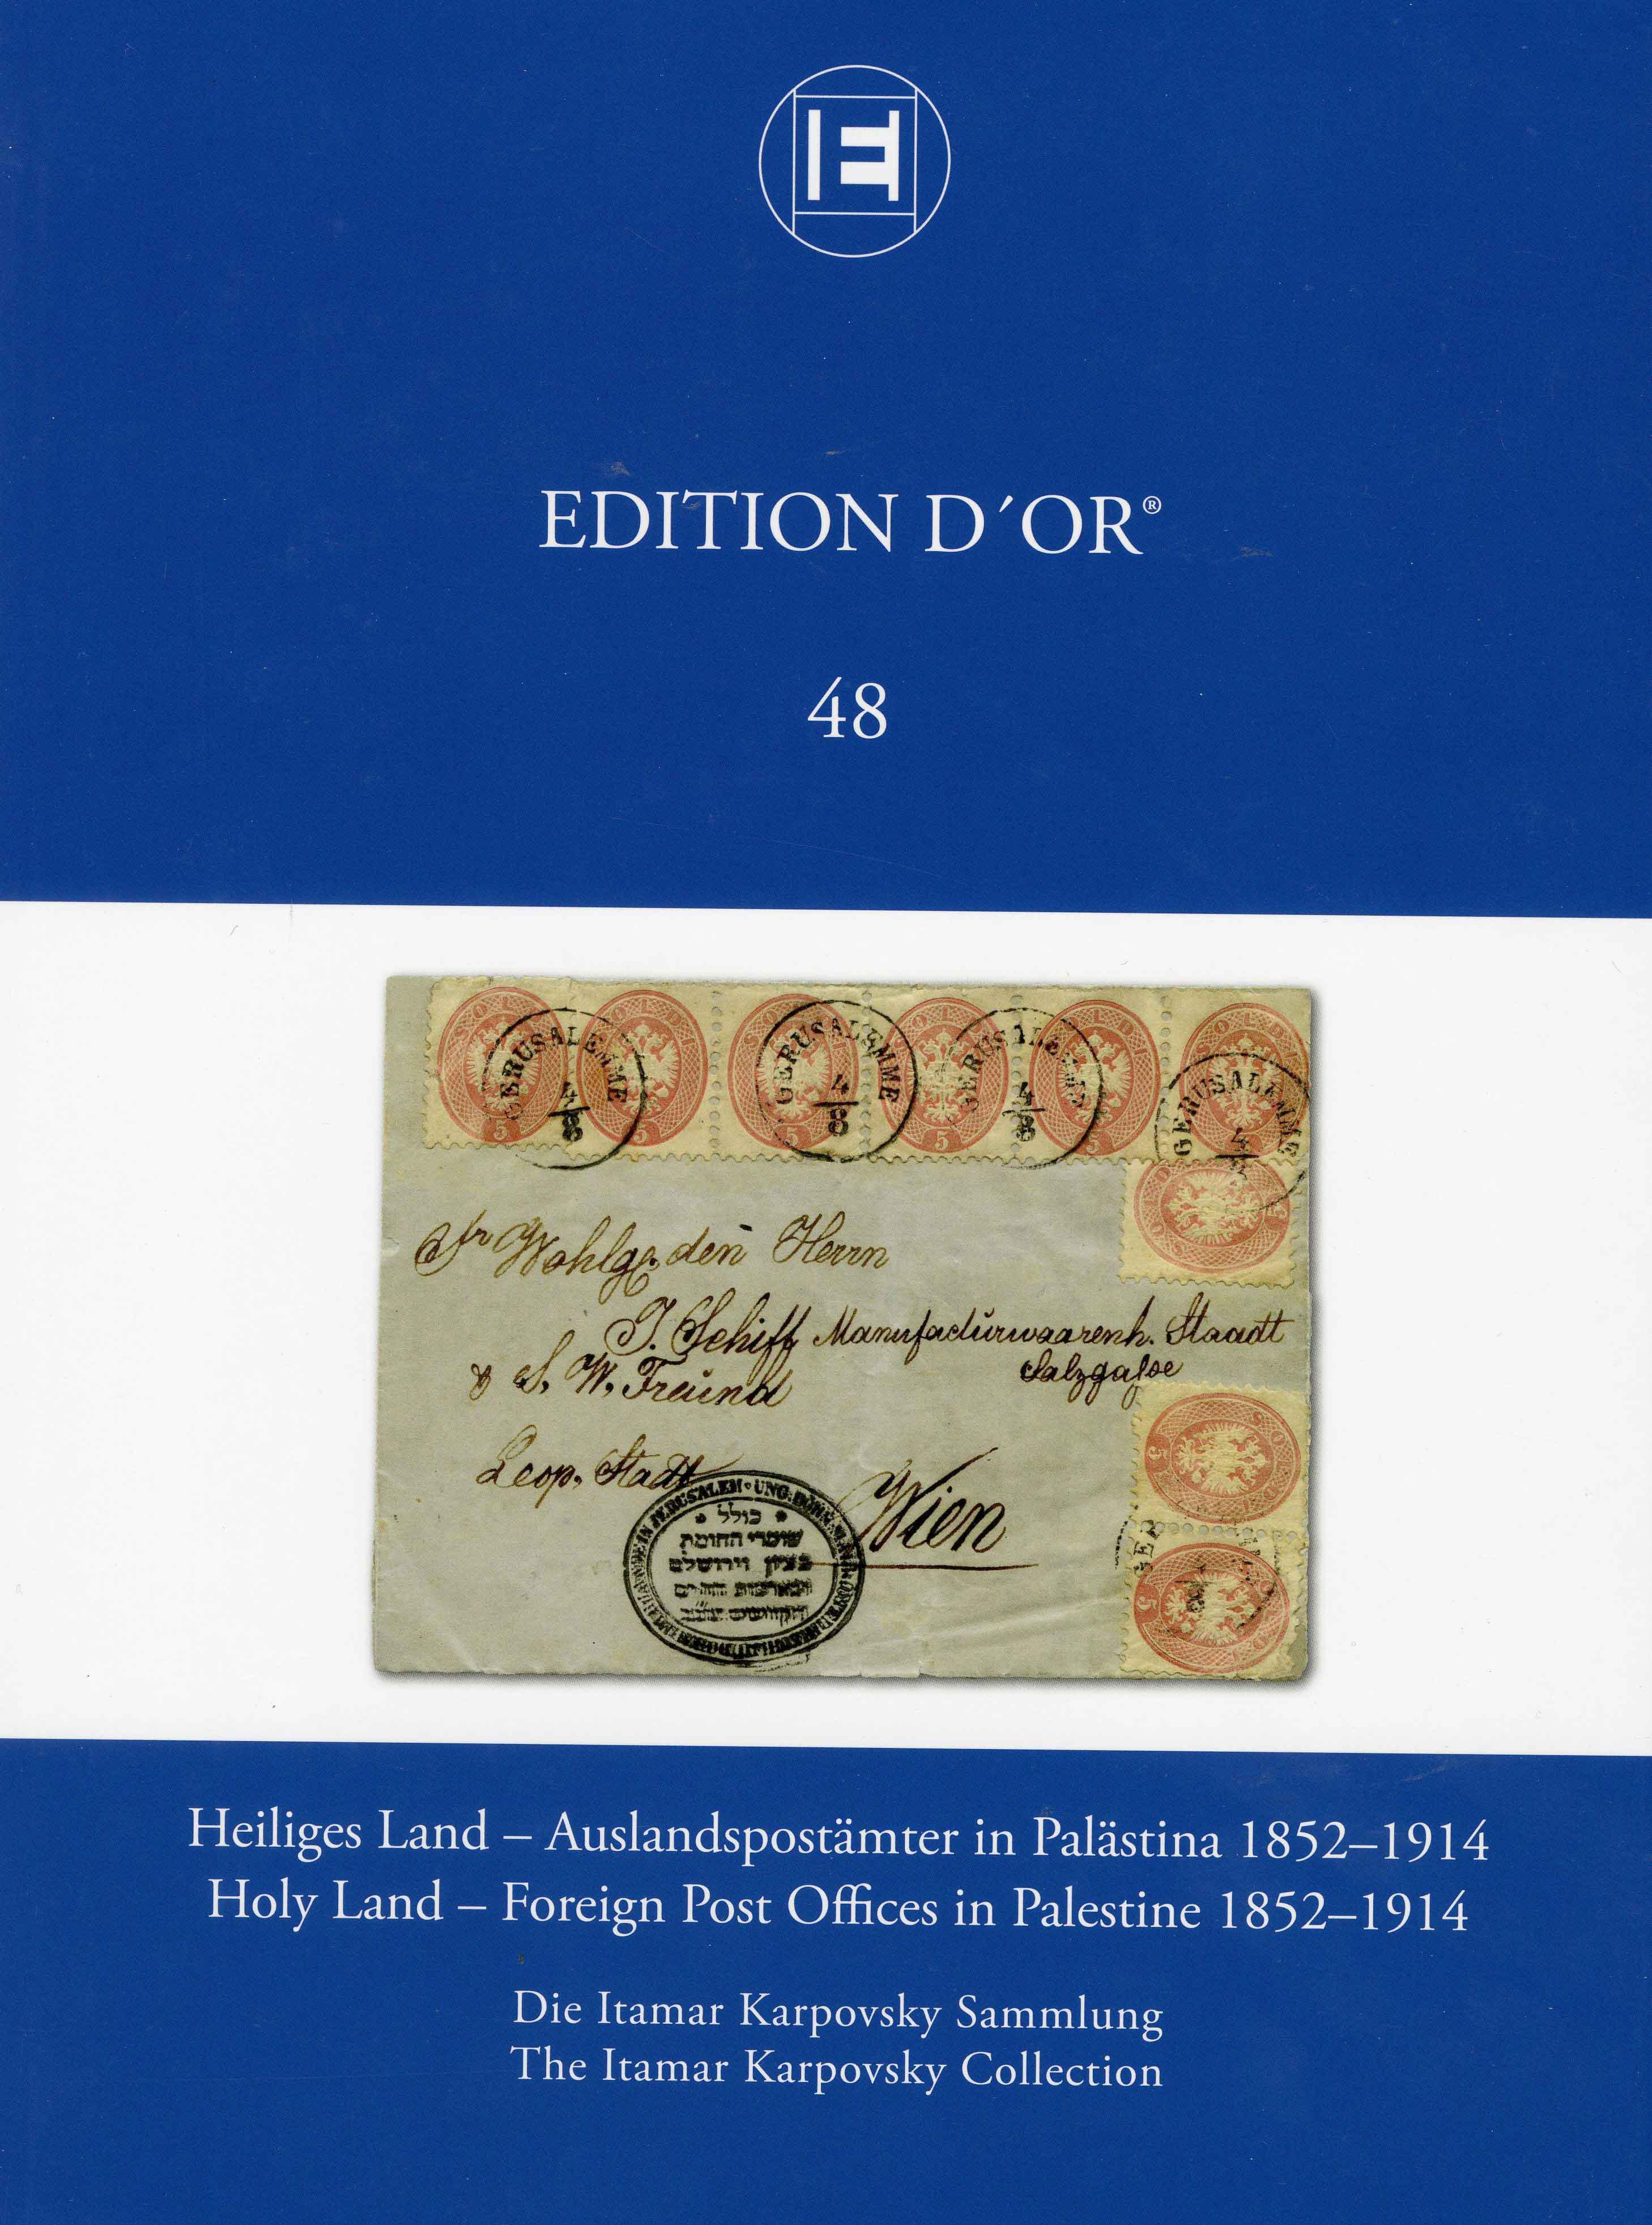 Vol. 48: Holy Land -  Foreign Post Offices in Palestine 1852-1914 • The Itamar Karpovsky Collection